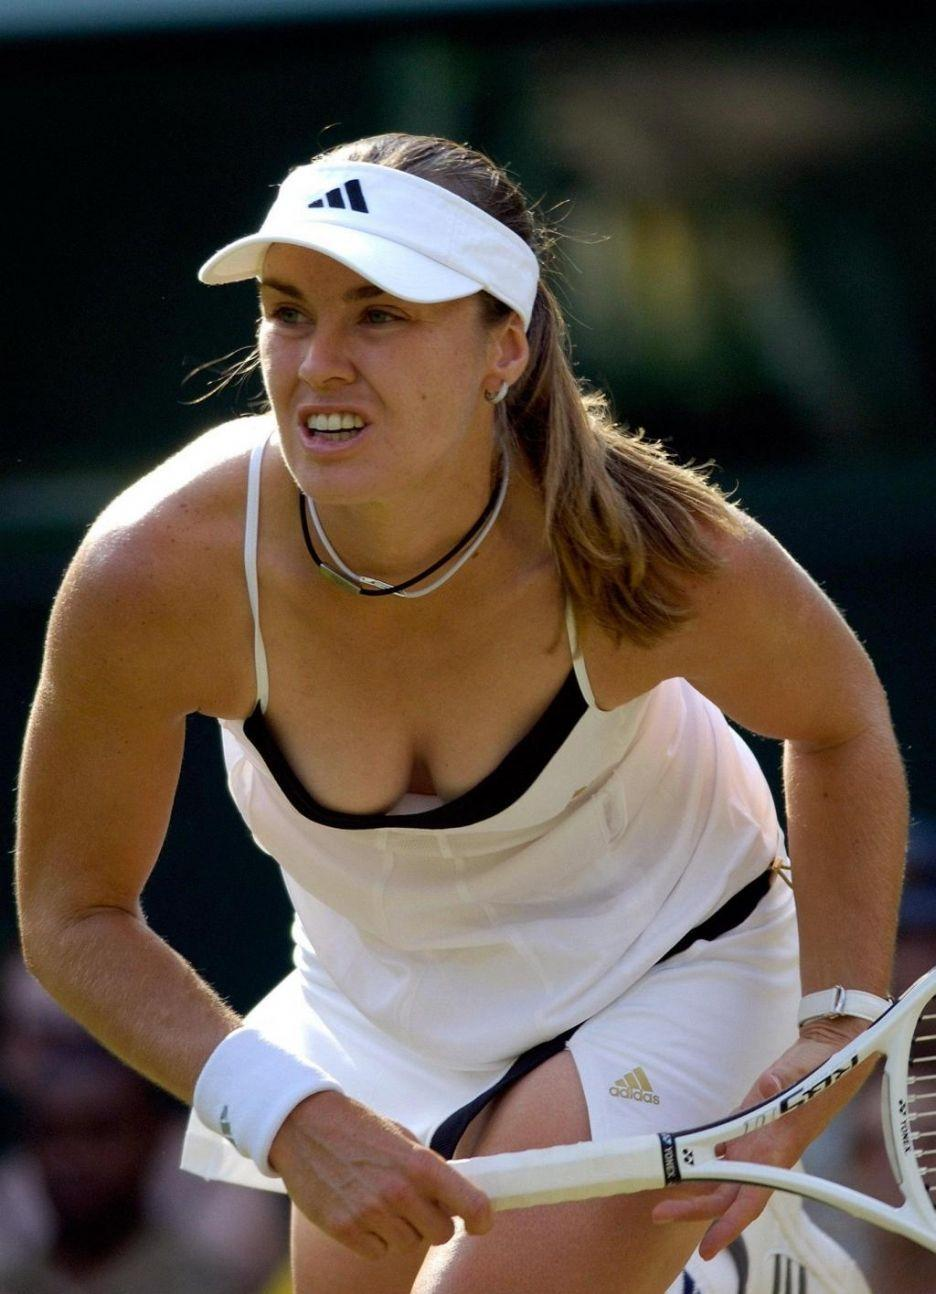 Martina Hingis, Tennis Player